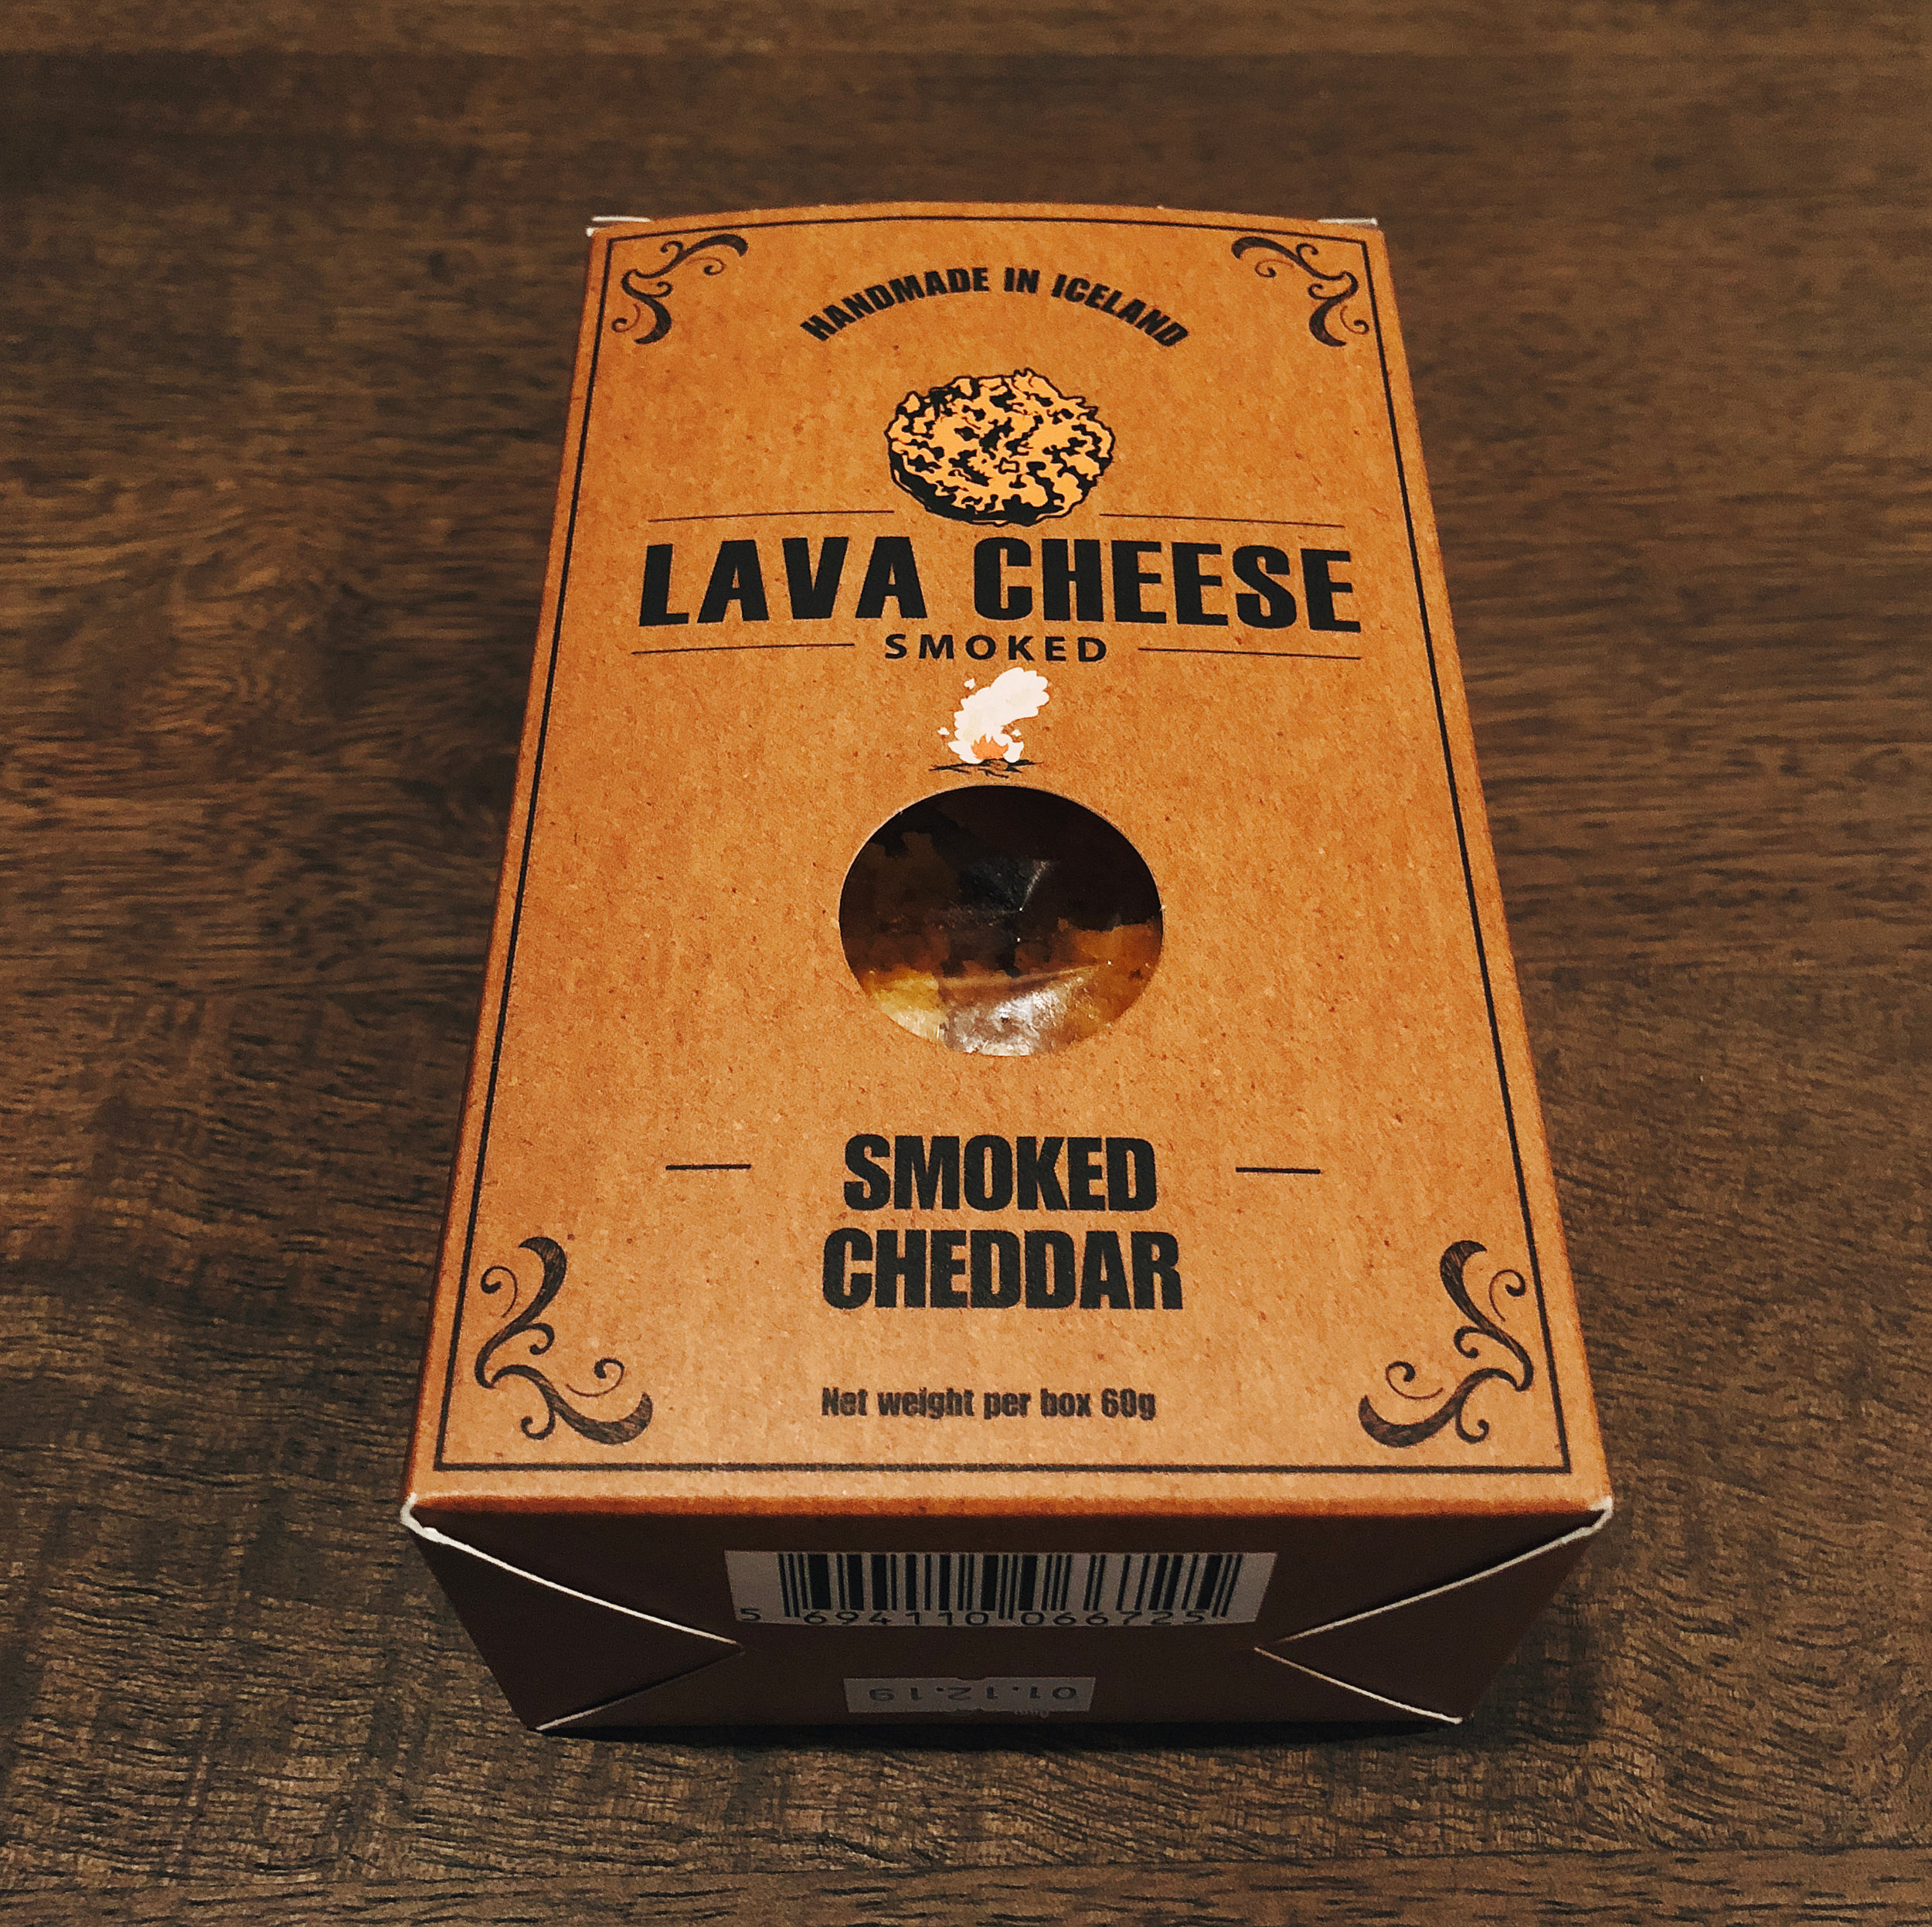 lava-cheese-front-box.jpg